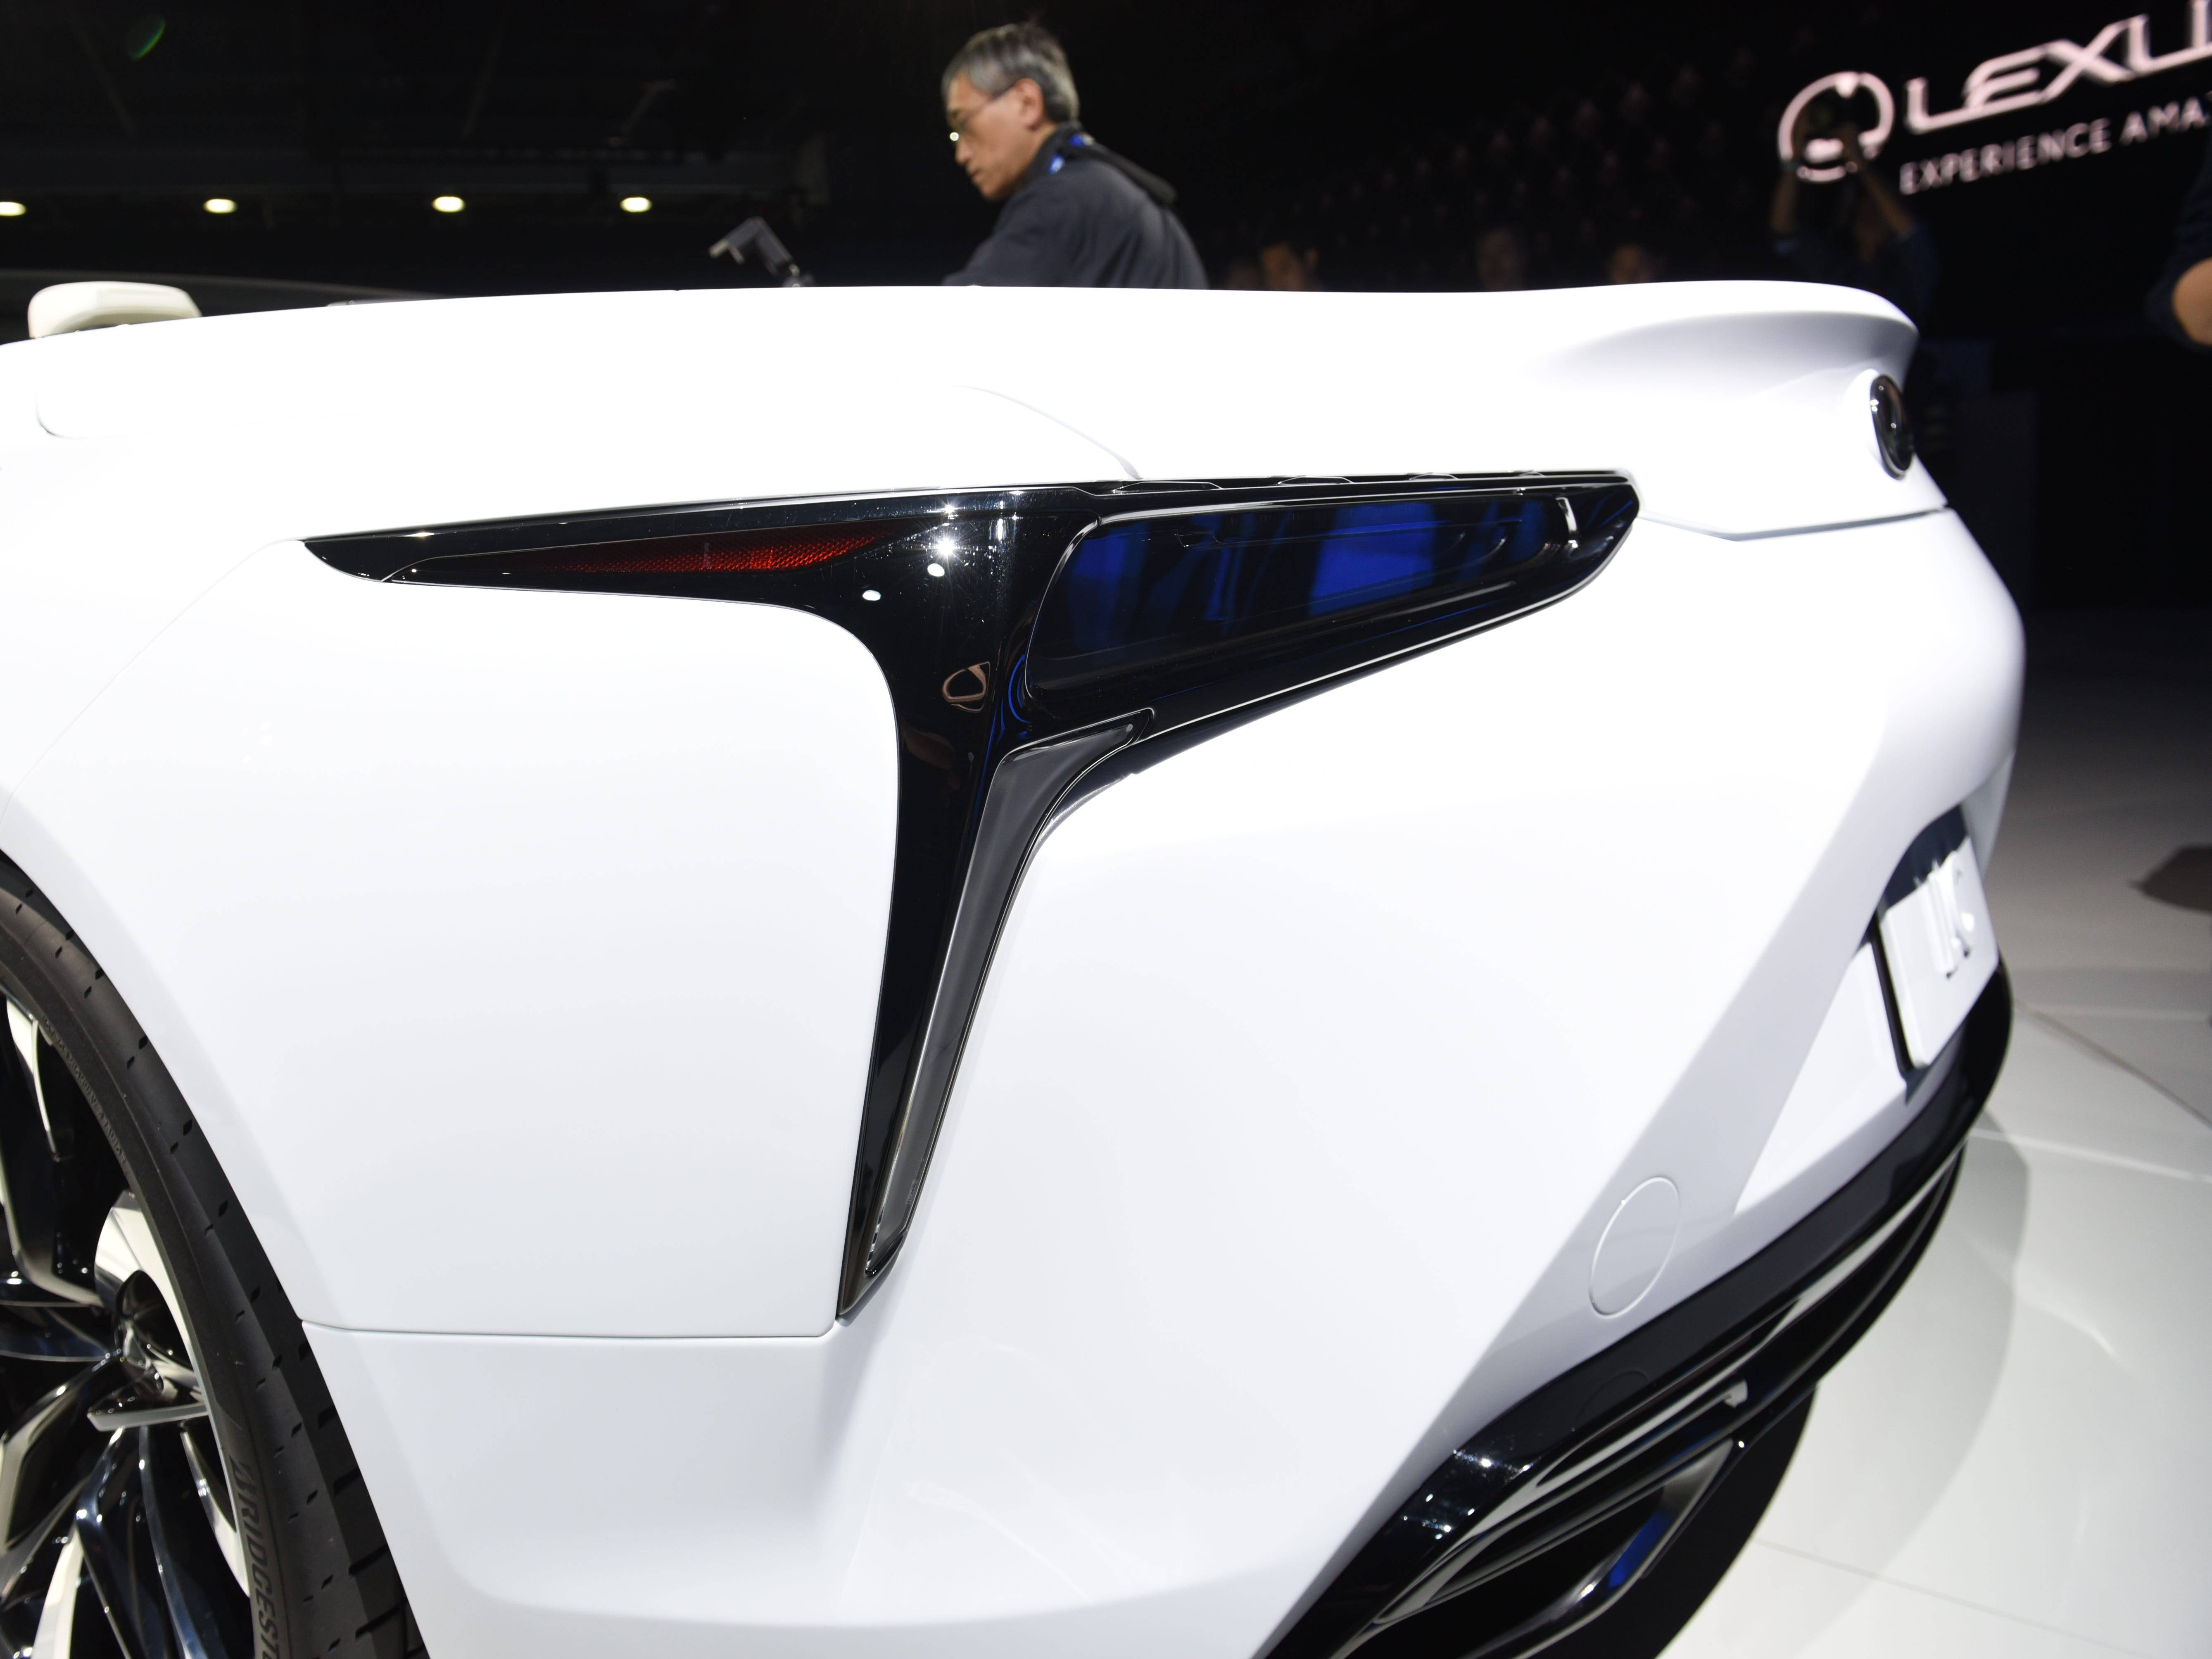 The Lexus LC Convertible concept shows off its unique rear tail-lights.